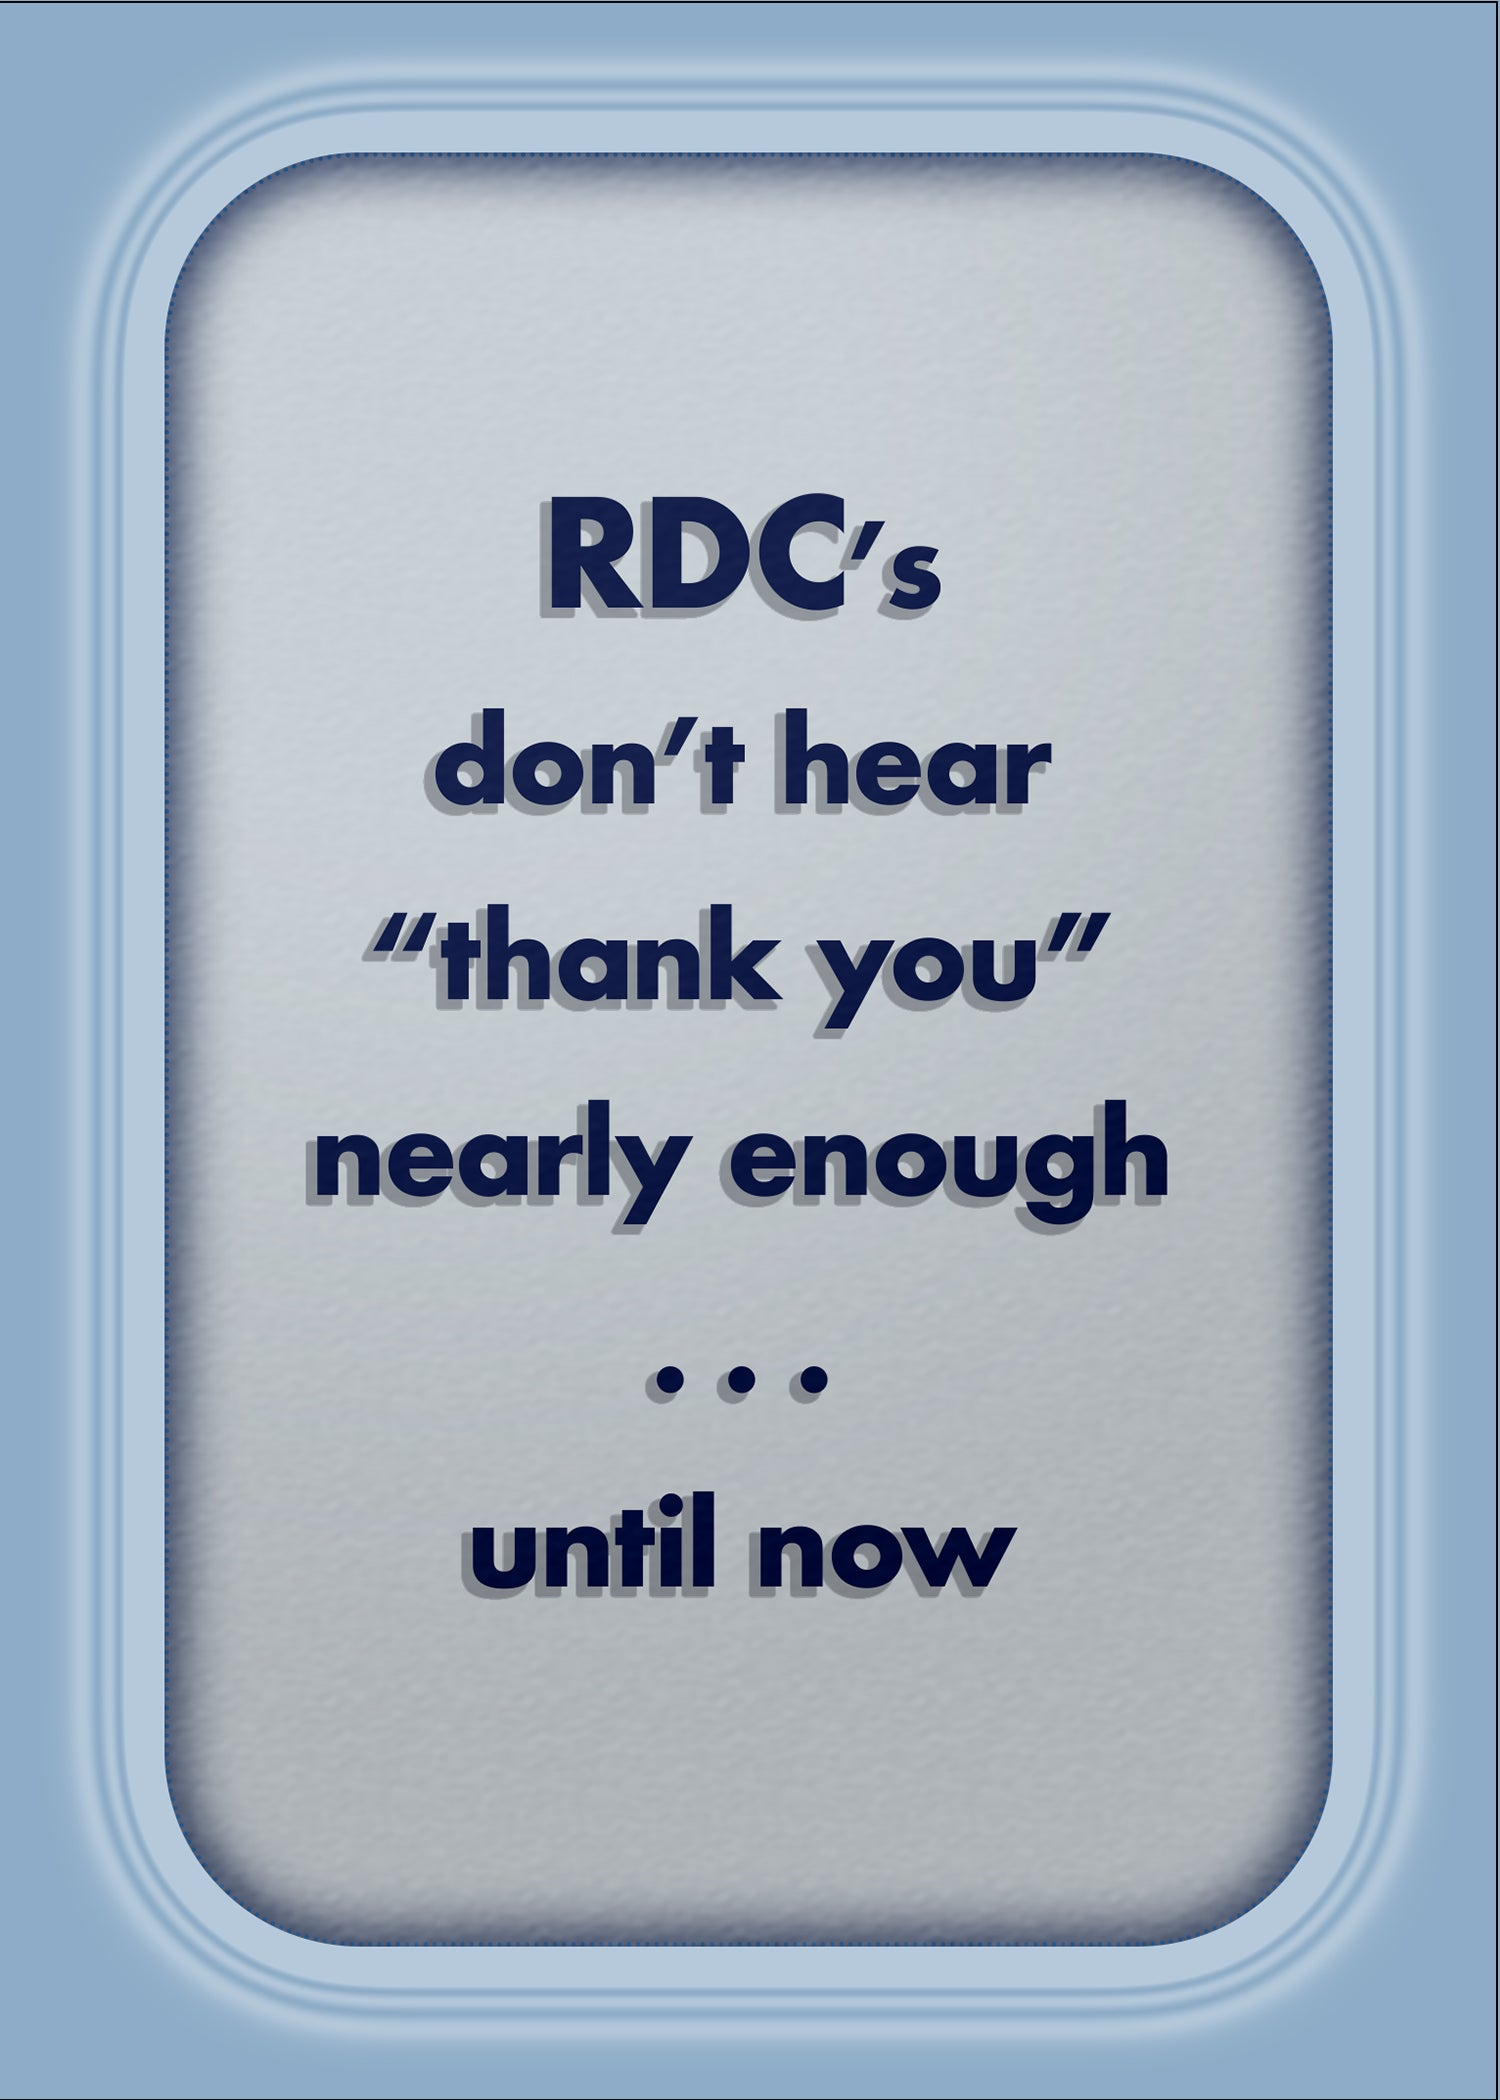 USN military RDC thank you greeting card - many thanks - 2MyHero